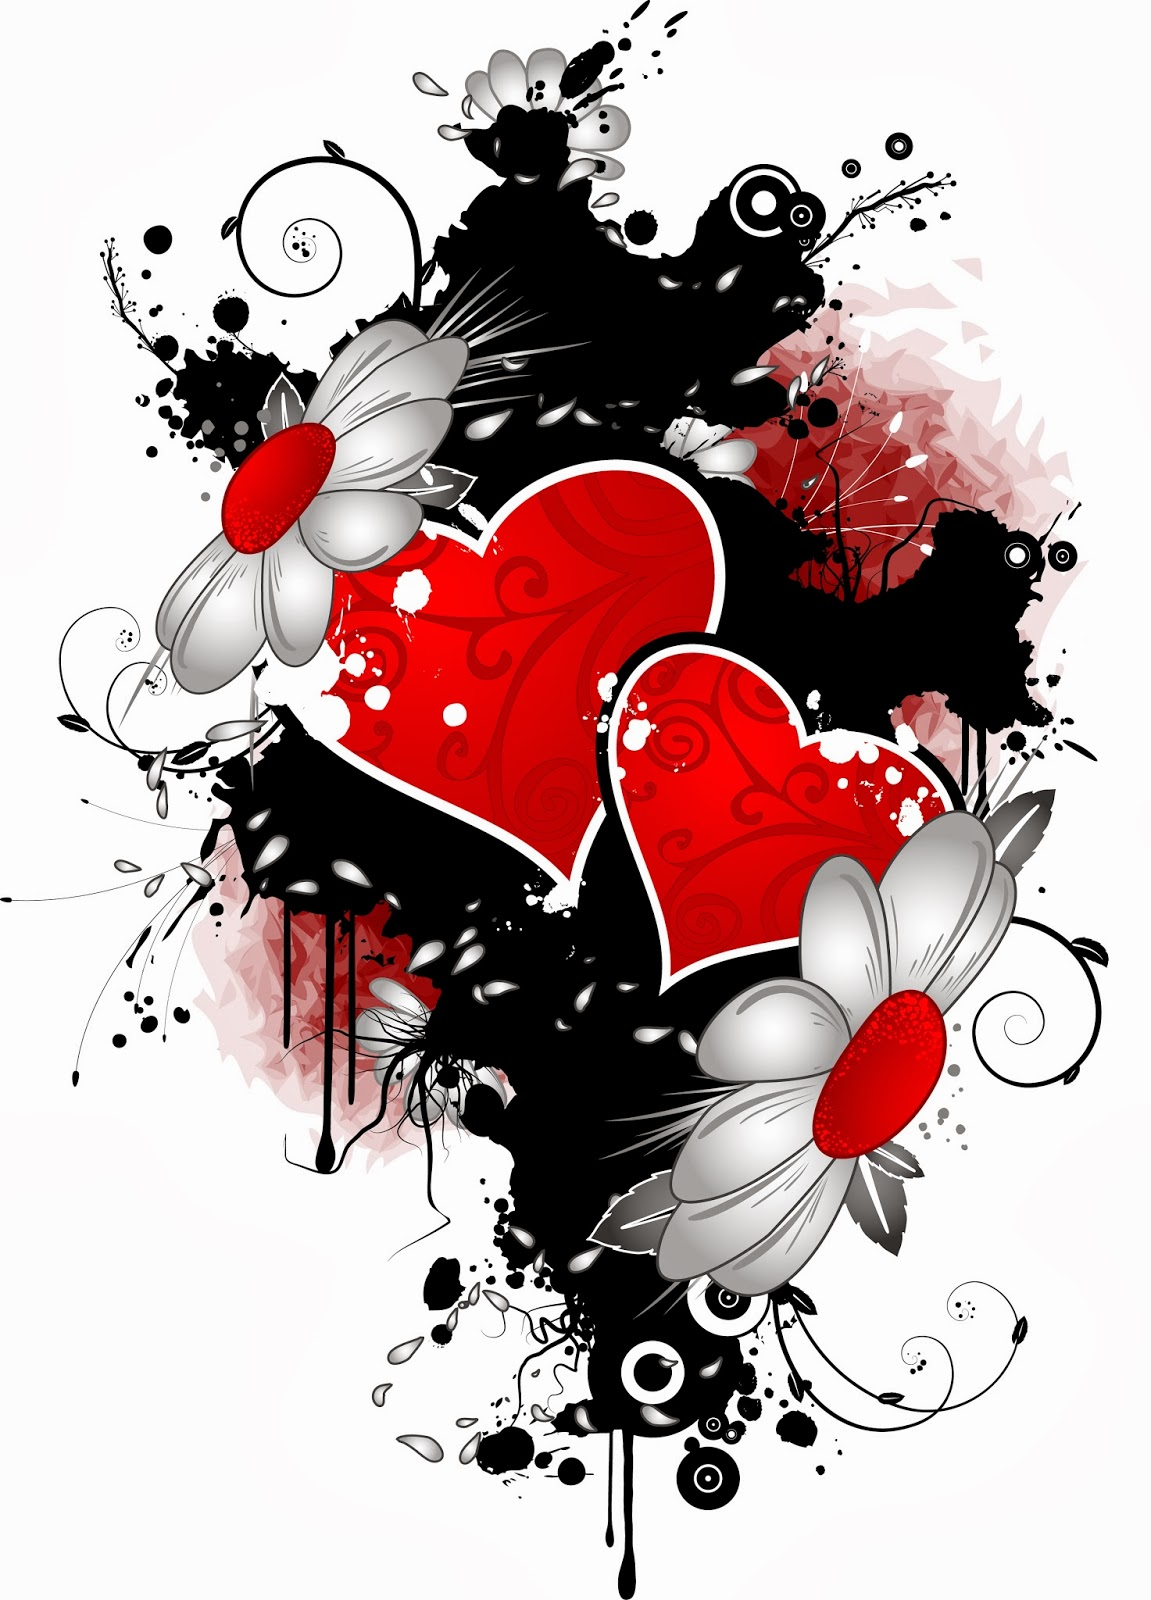 Lovable Images: Wonderful Love Heart Pictures Free Download || Love Beauty Heart'S || Heart ...